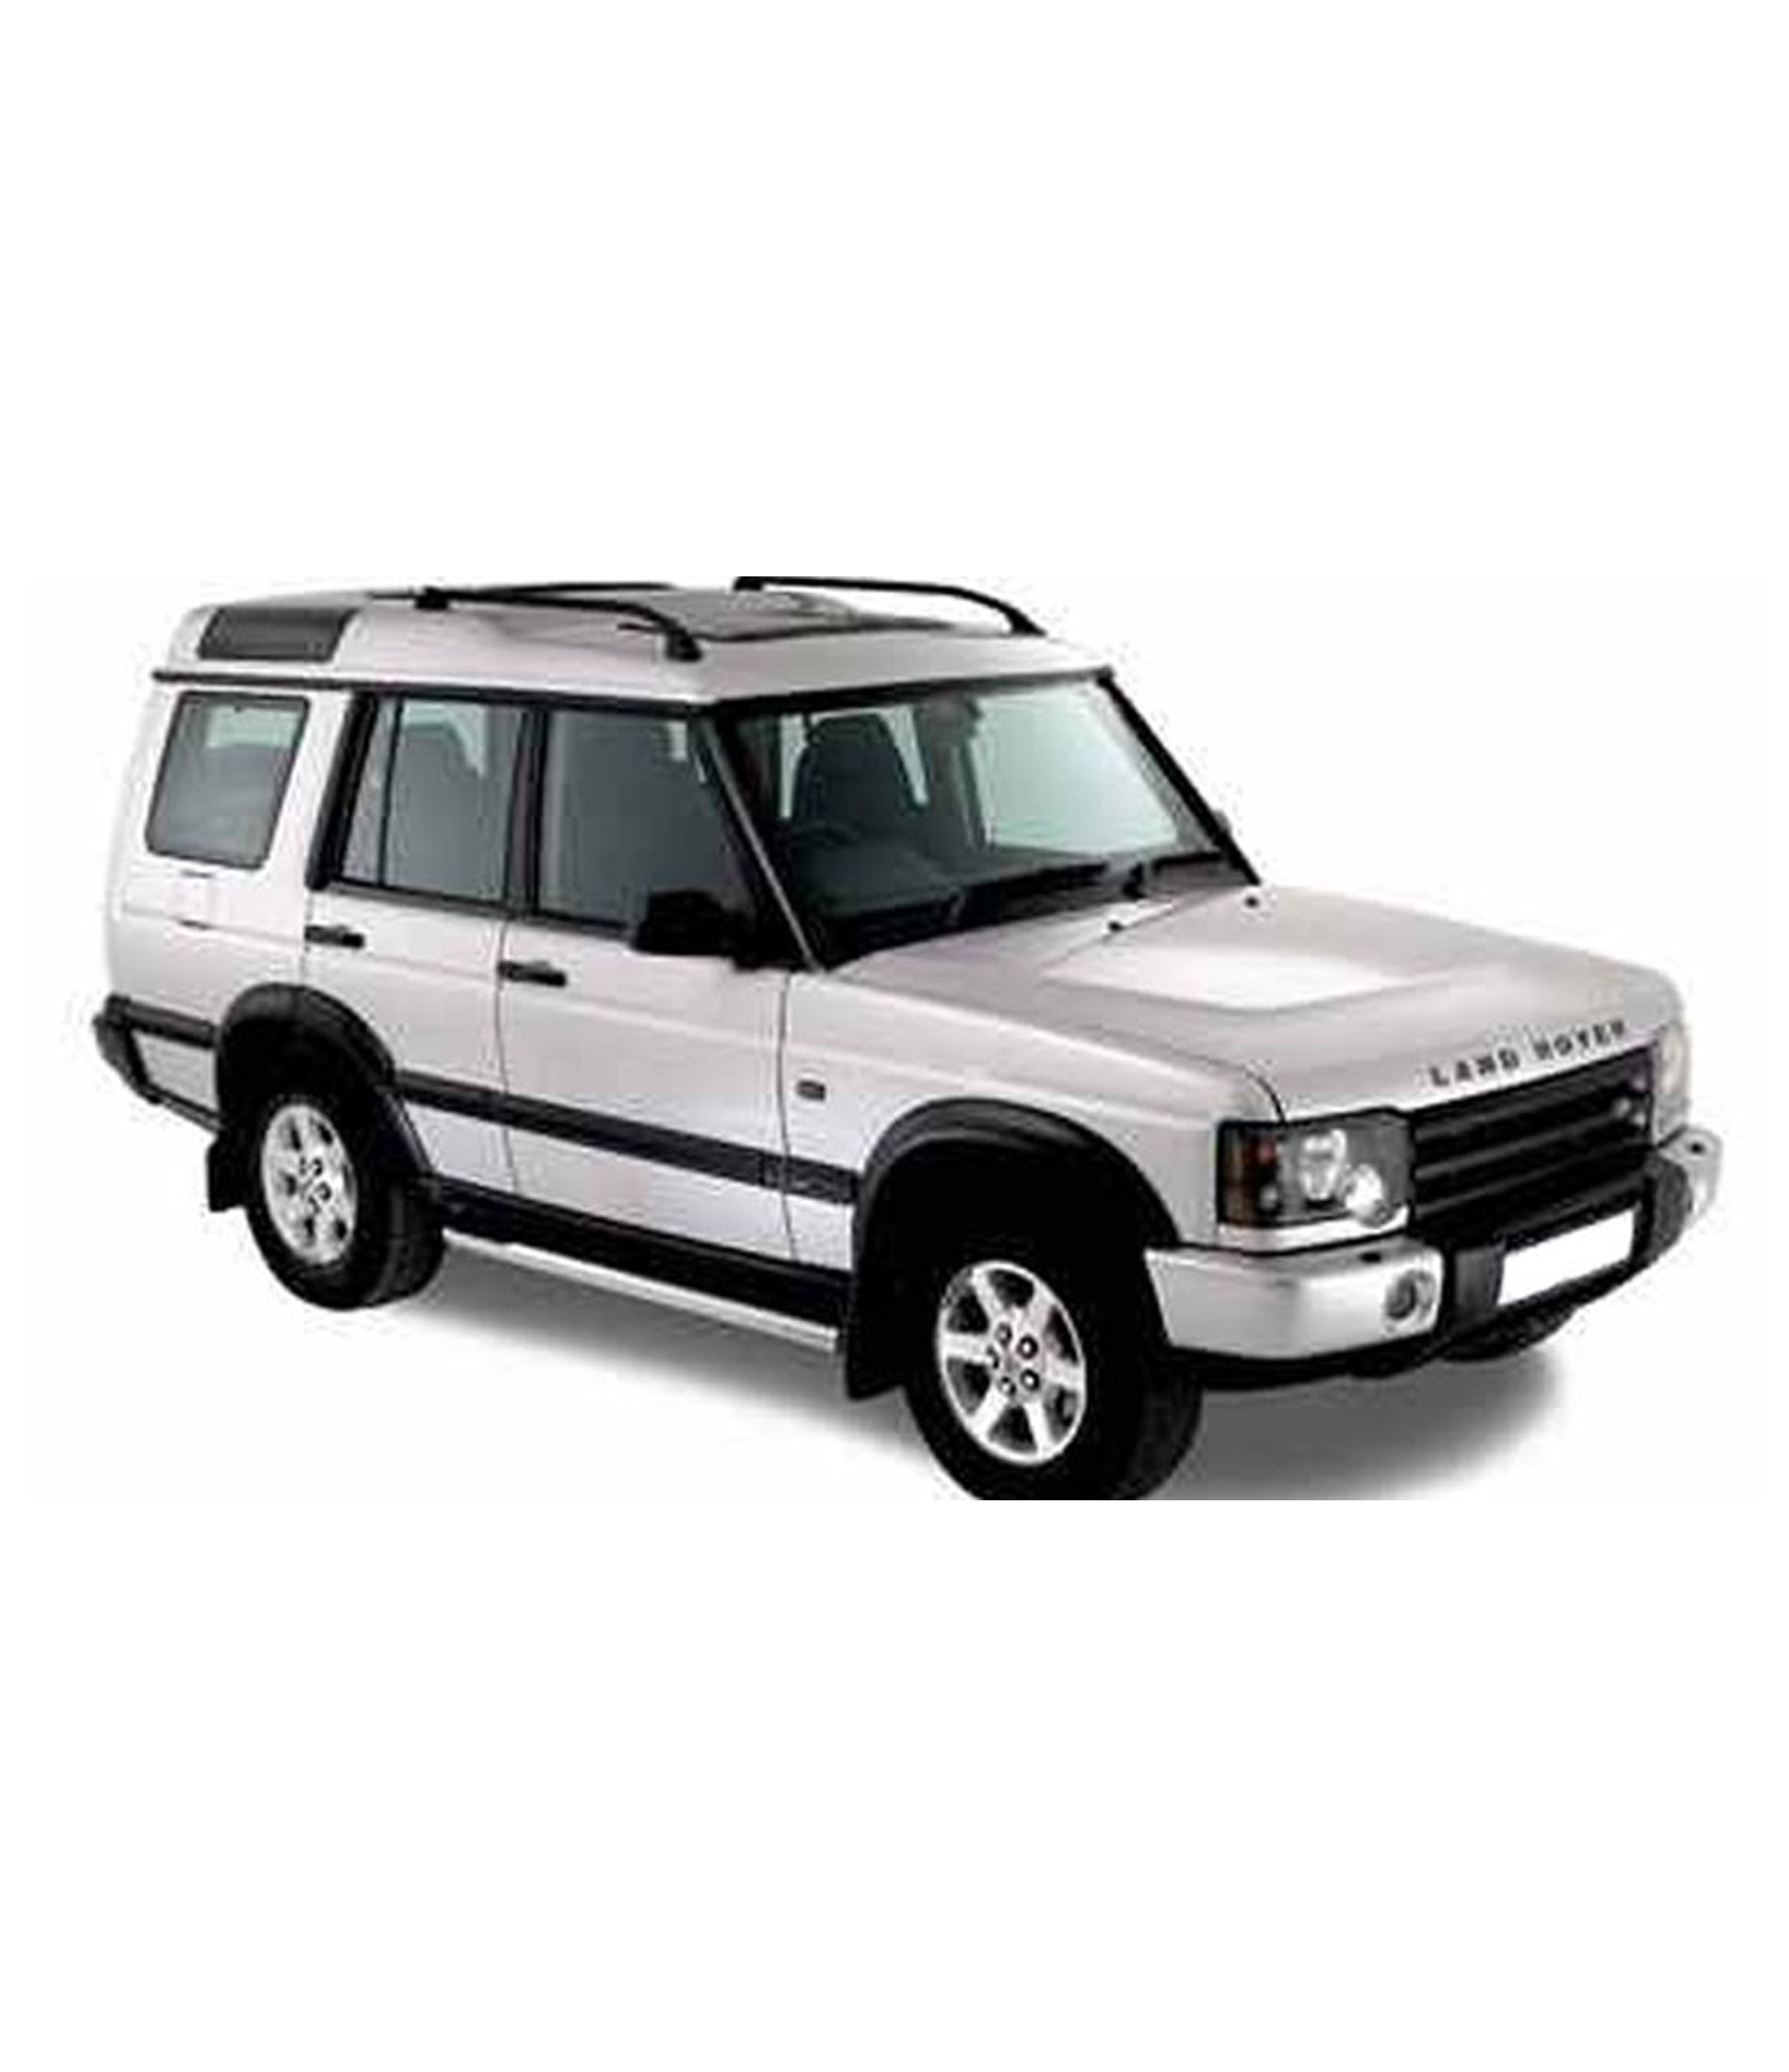 Wondrous Land Rover Discovery Td5 Full Set Caraccident5 Cool Chair Designs And Ideas Caraccident5Info